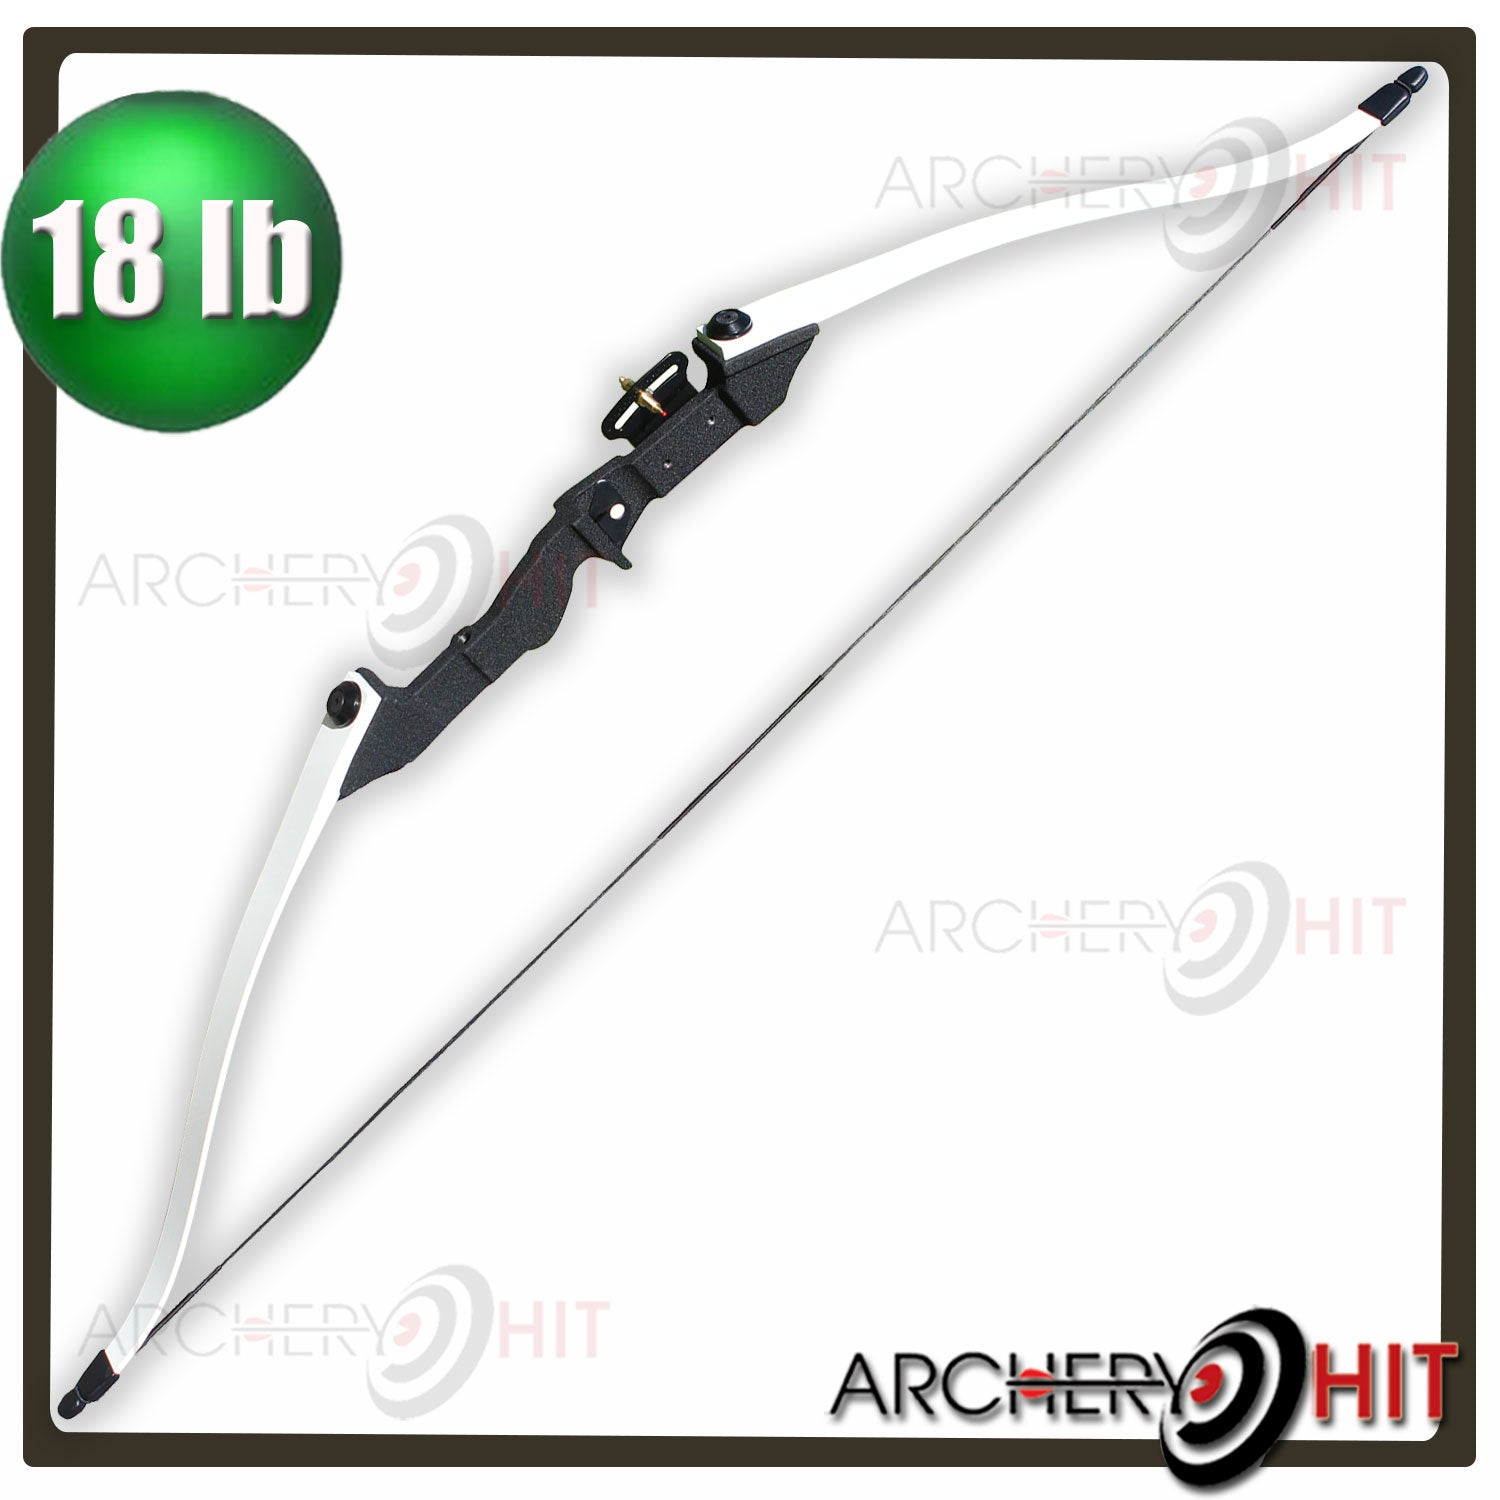 18lb Black Spirit Junior Take-Down Recurve Bow